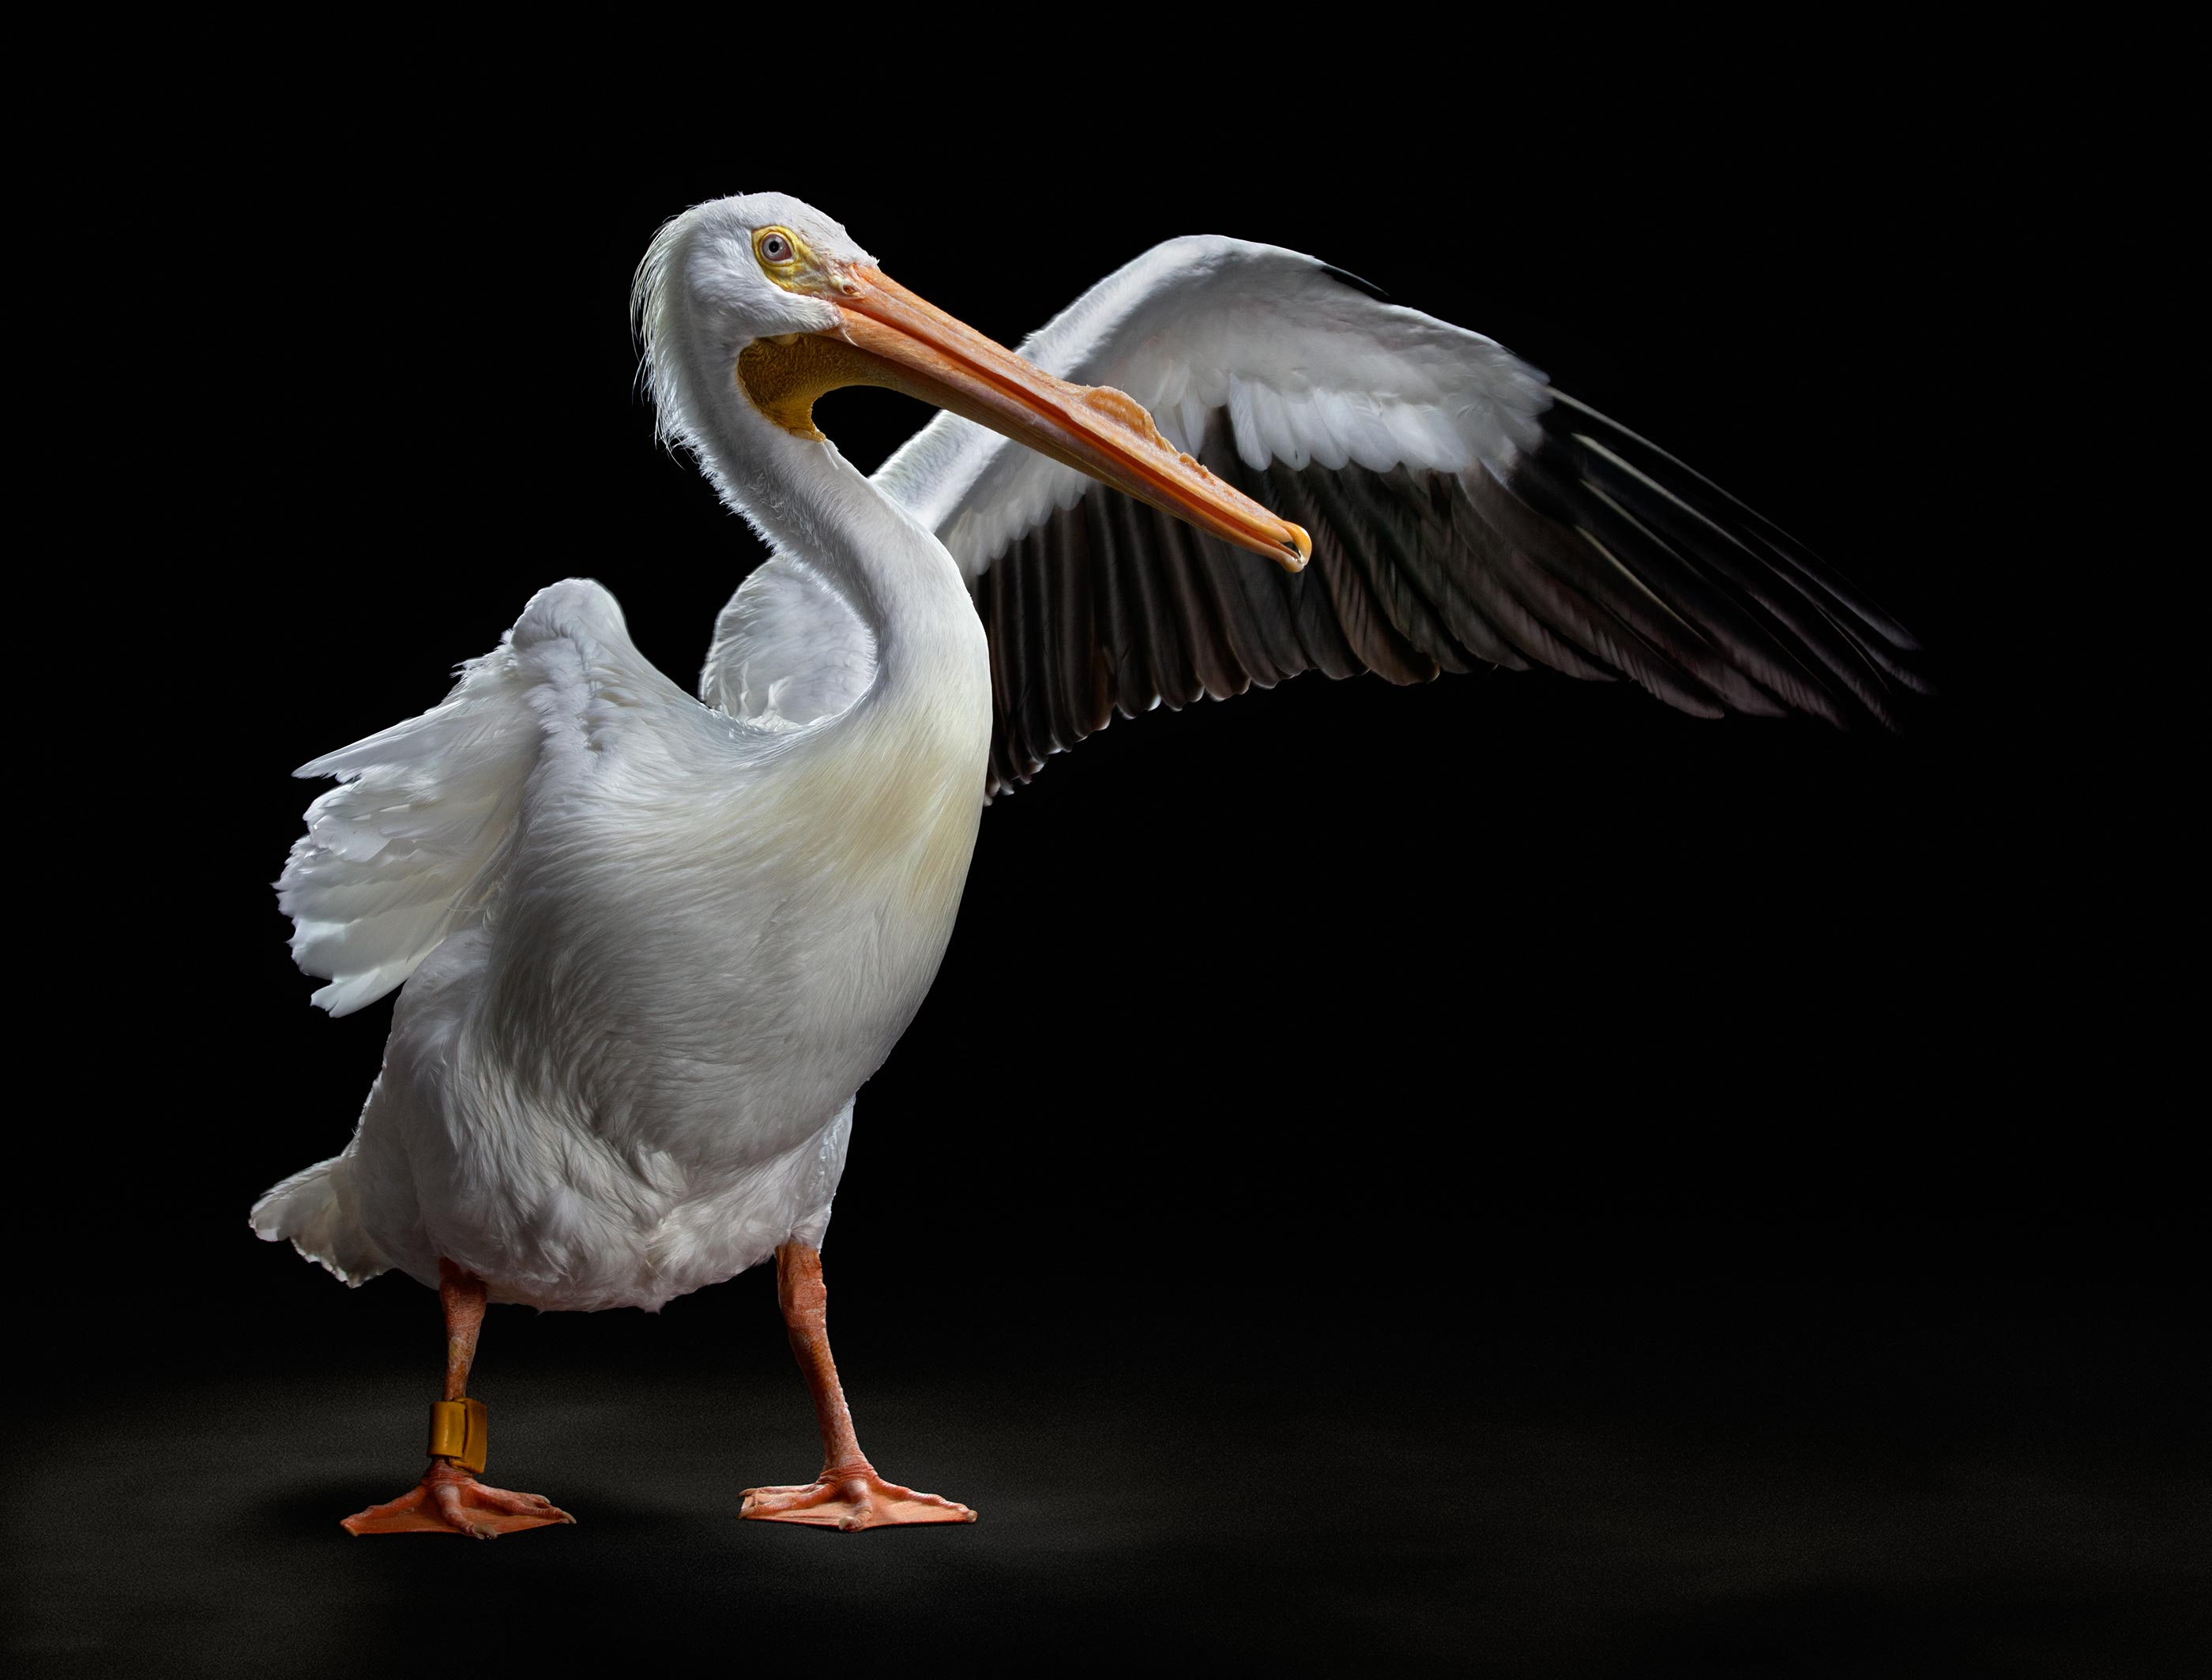 tampa-commercial-animal-photographer-bob-croslin-birds-03